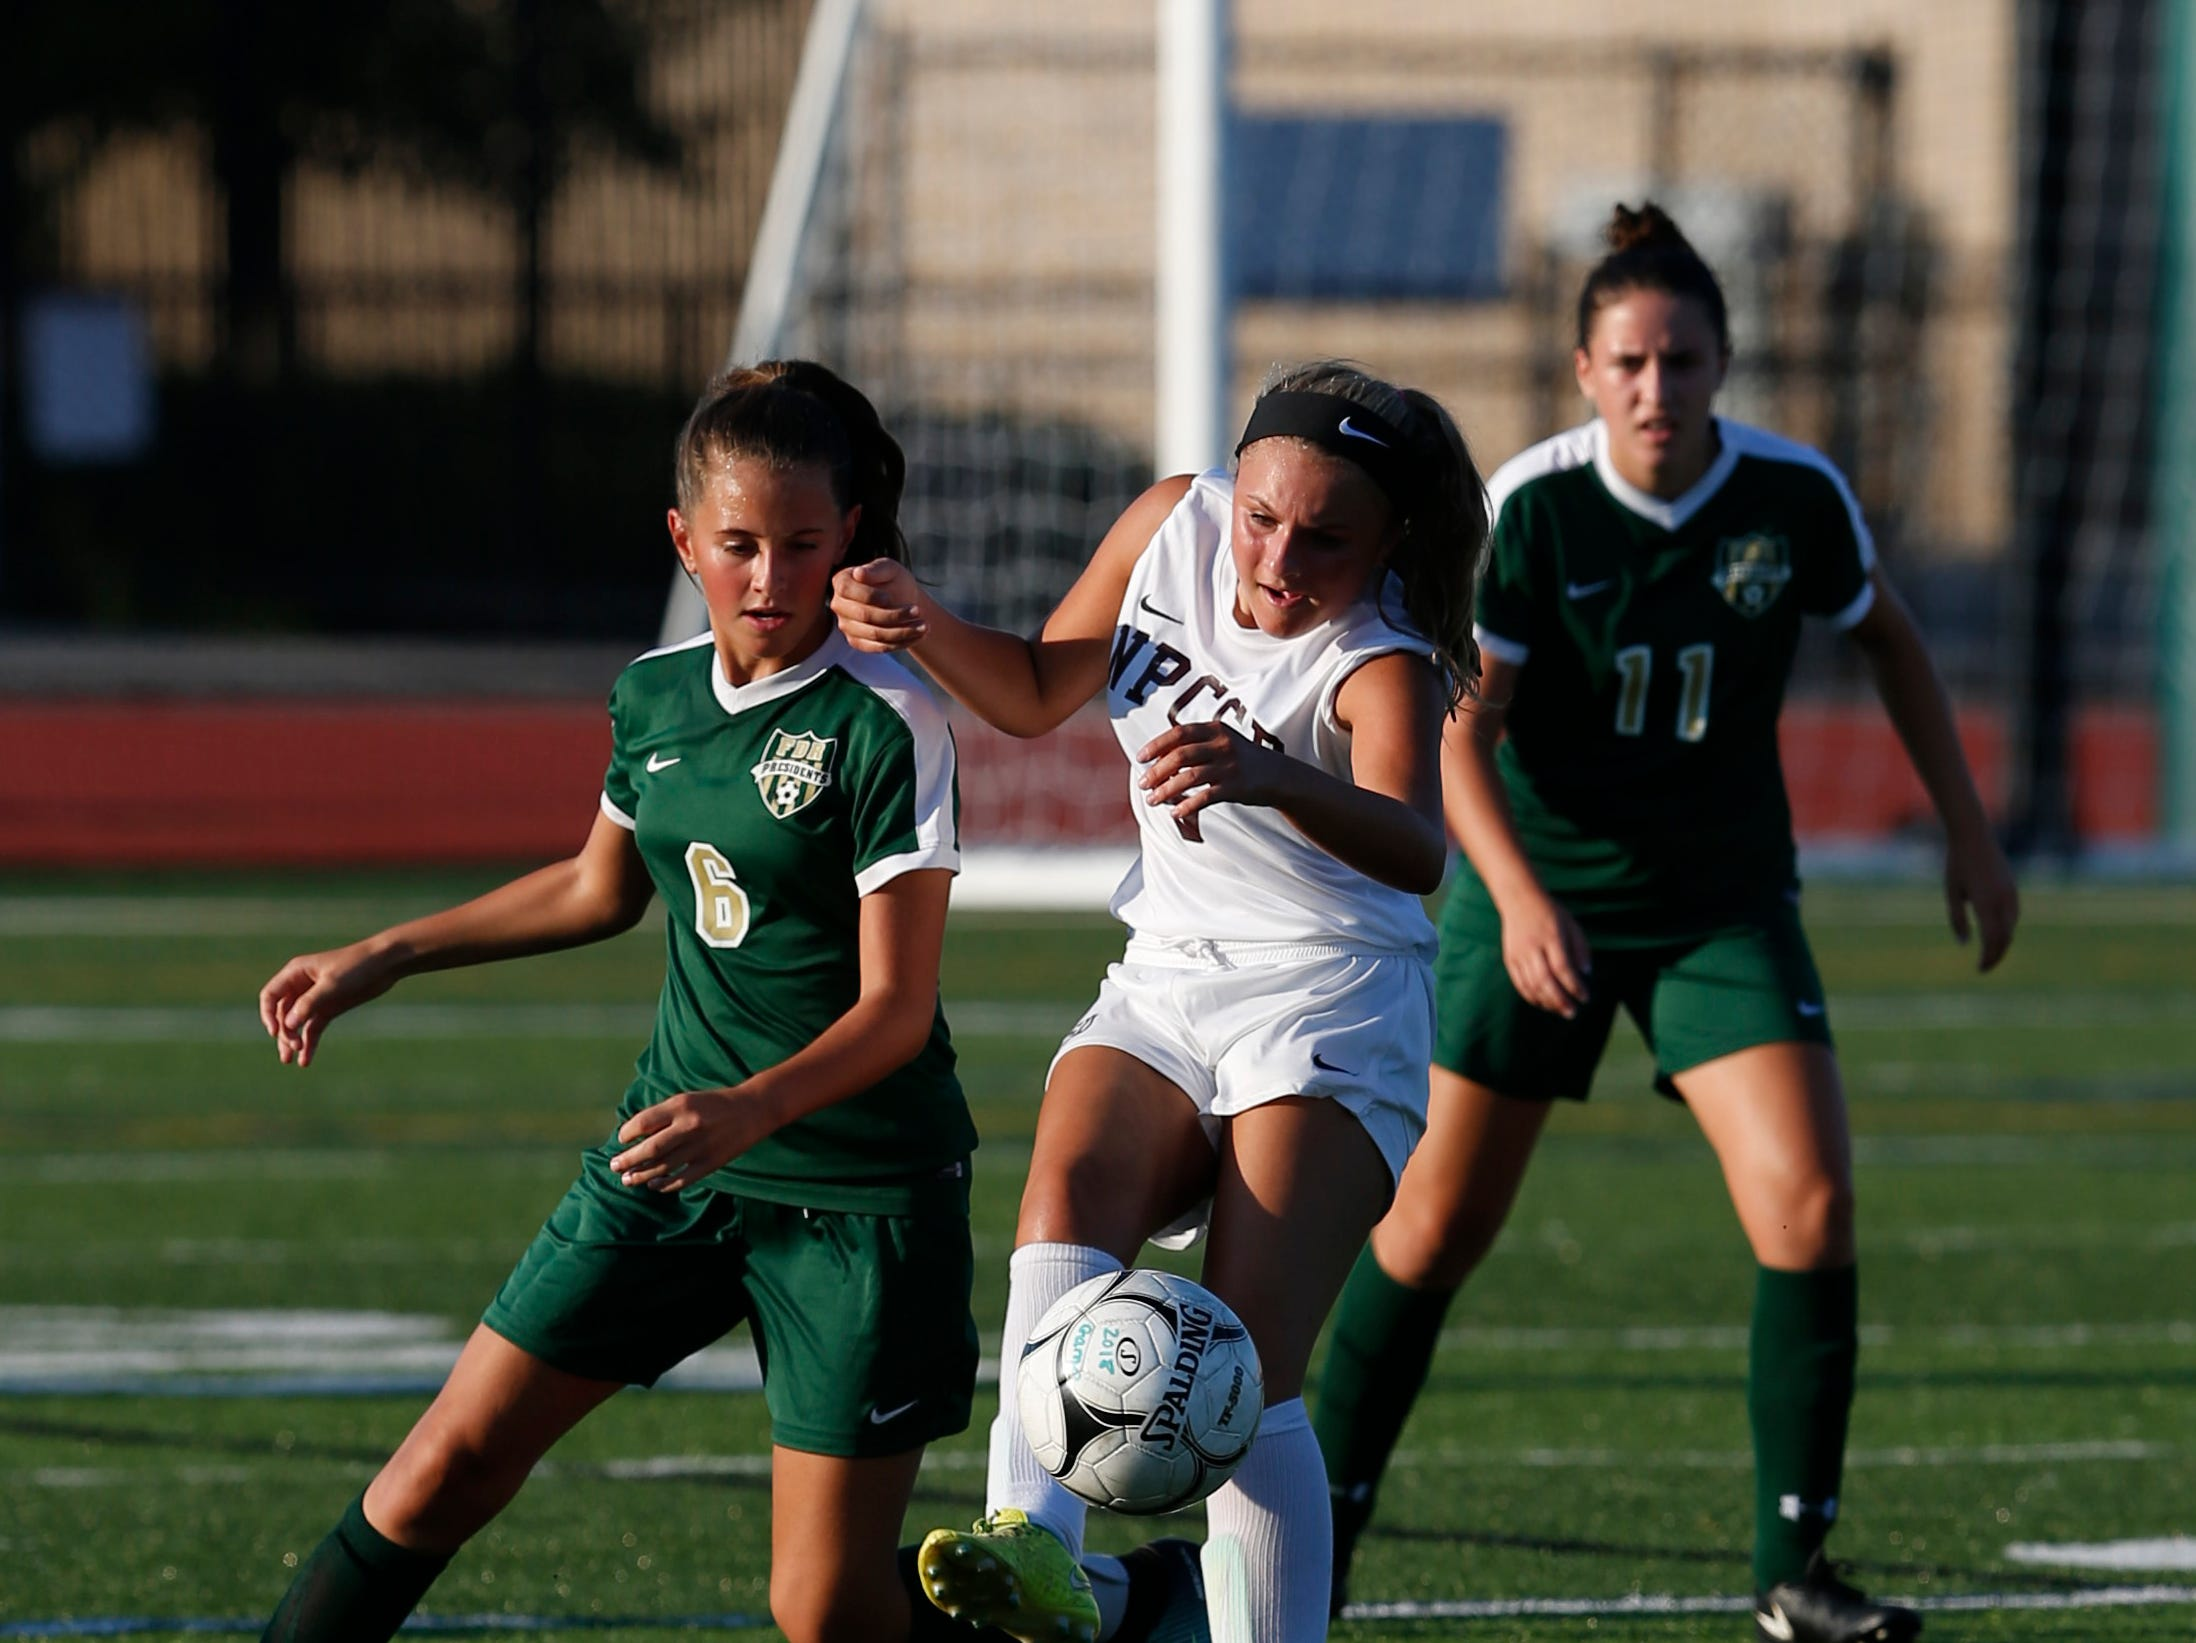 New Paltz's Maddy Garcia clears the ball away from FDR's Emma Rasco during Wednesday's game in Hyde Park on September 5, 2018.